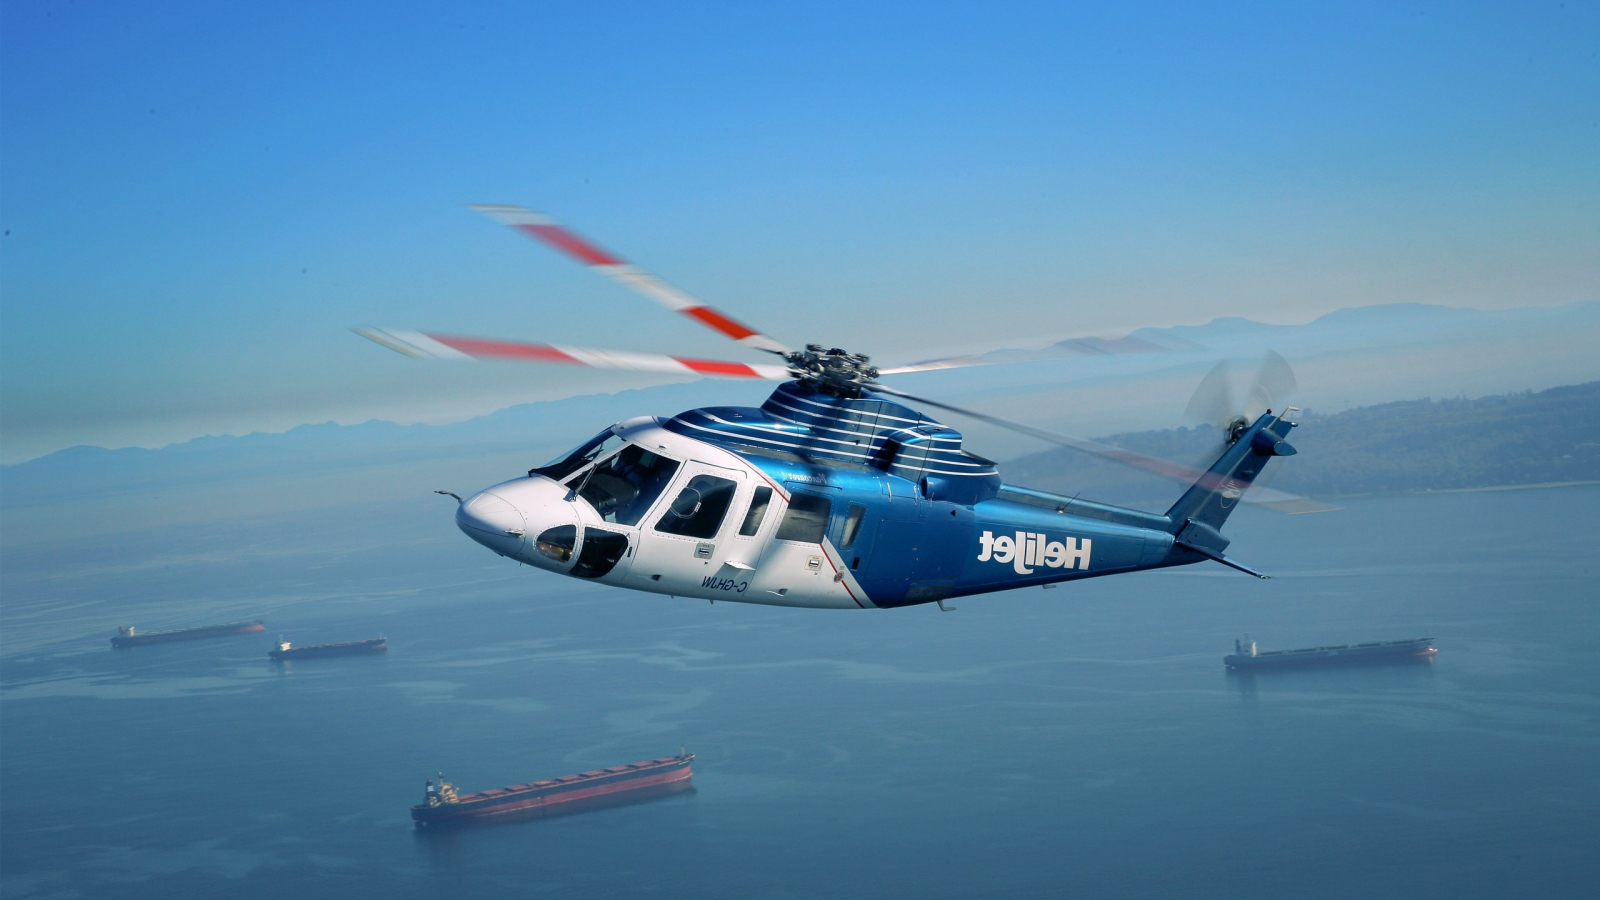 Helicopter Desktop HD Wallpapers Download Helicopter Desktop HD 1600x900